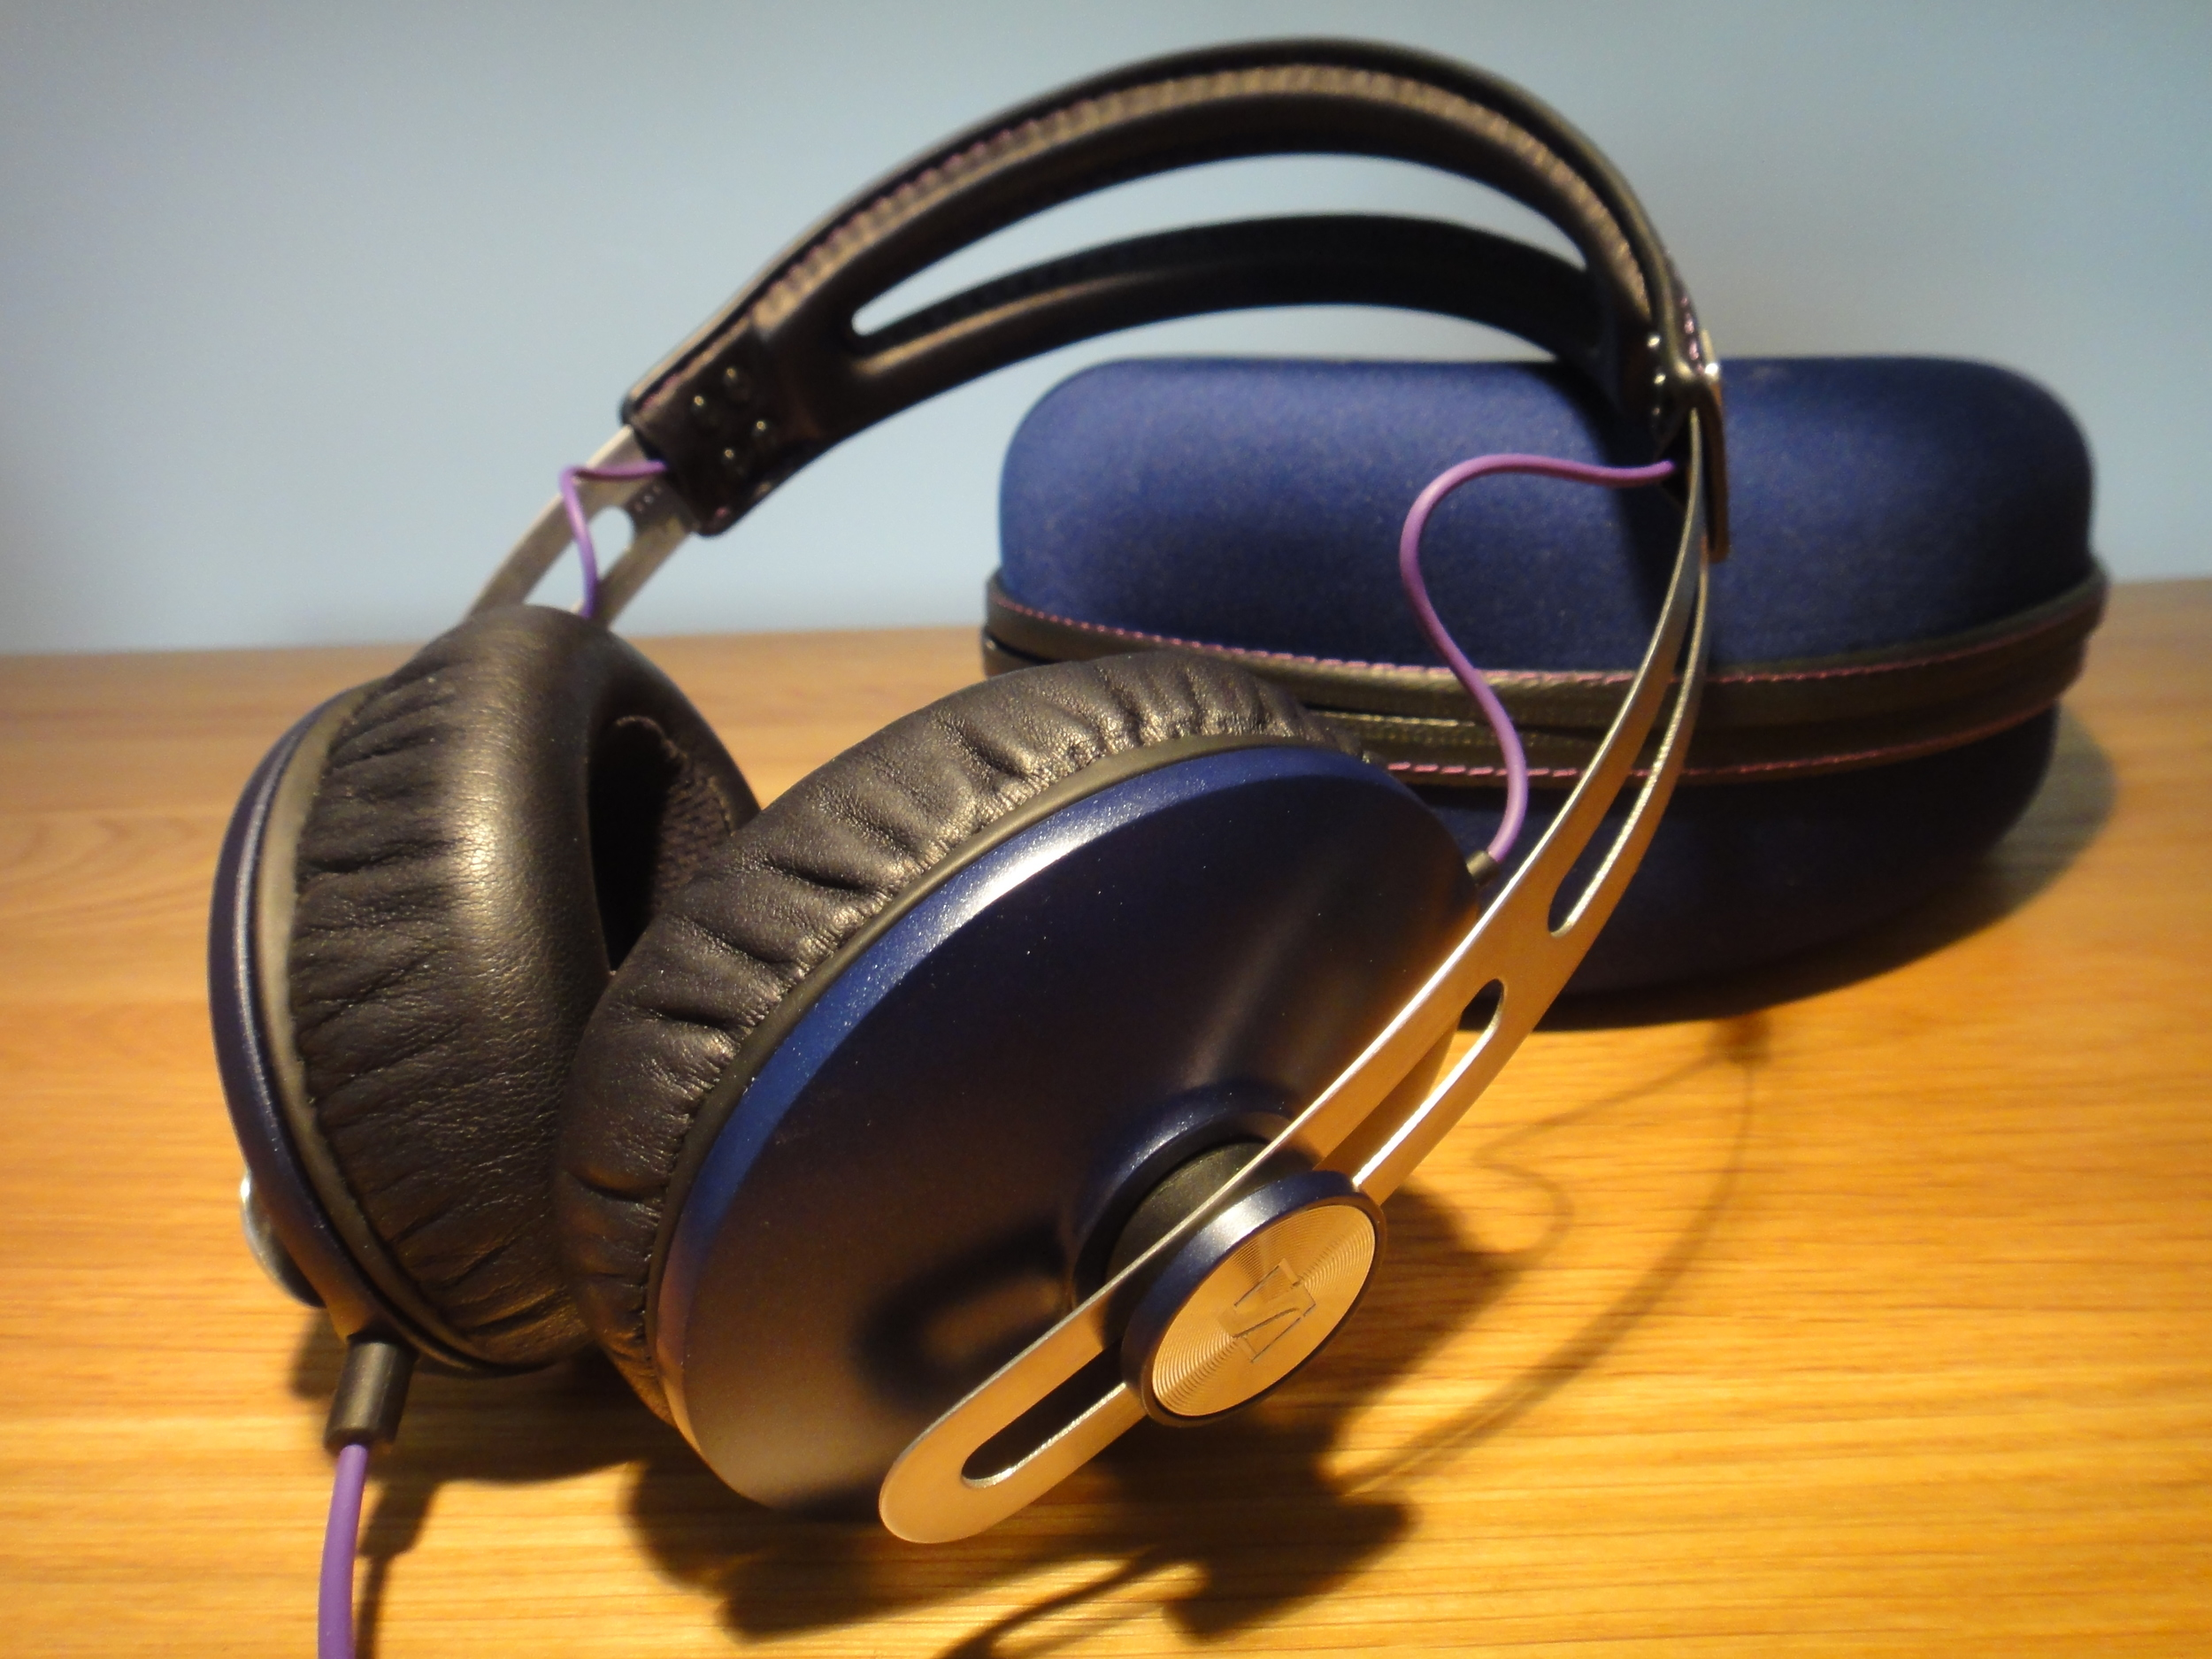 The original Sennheiser Momentums are, to my mind, the best mass market headphones around